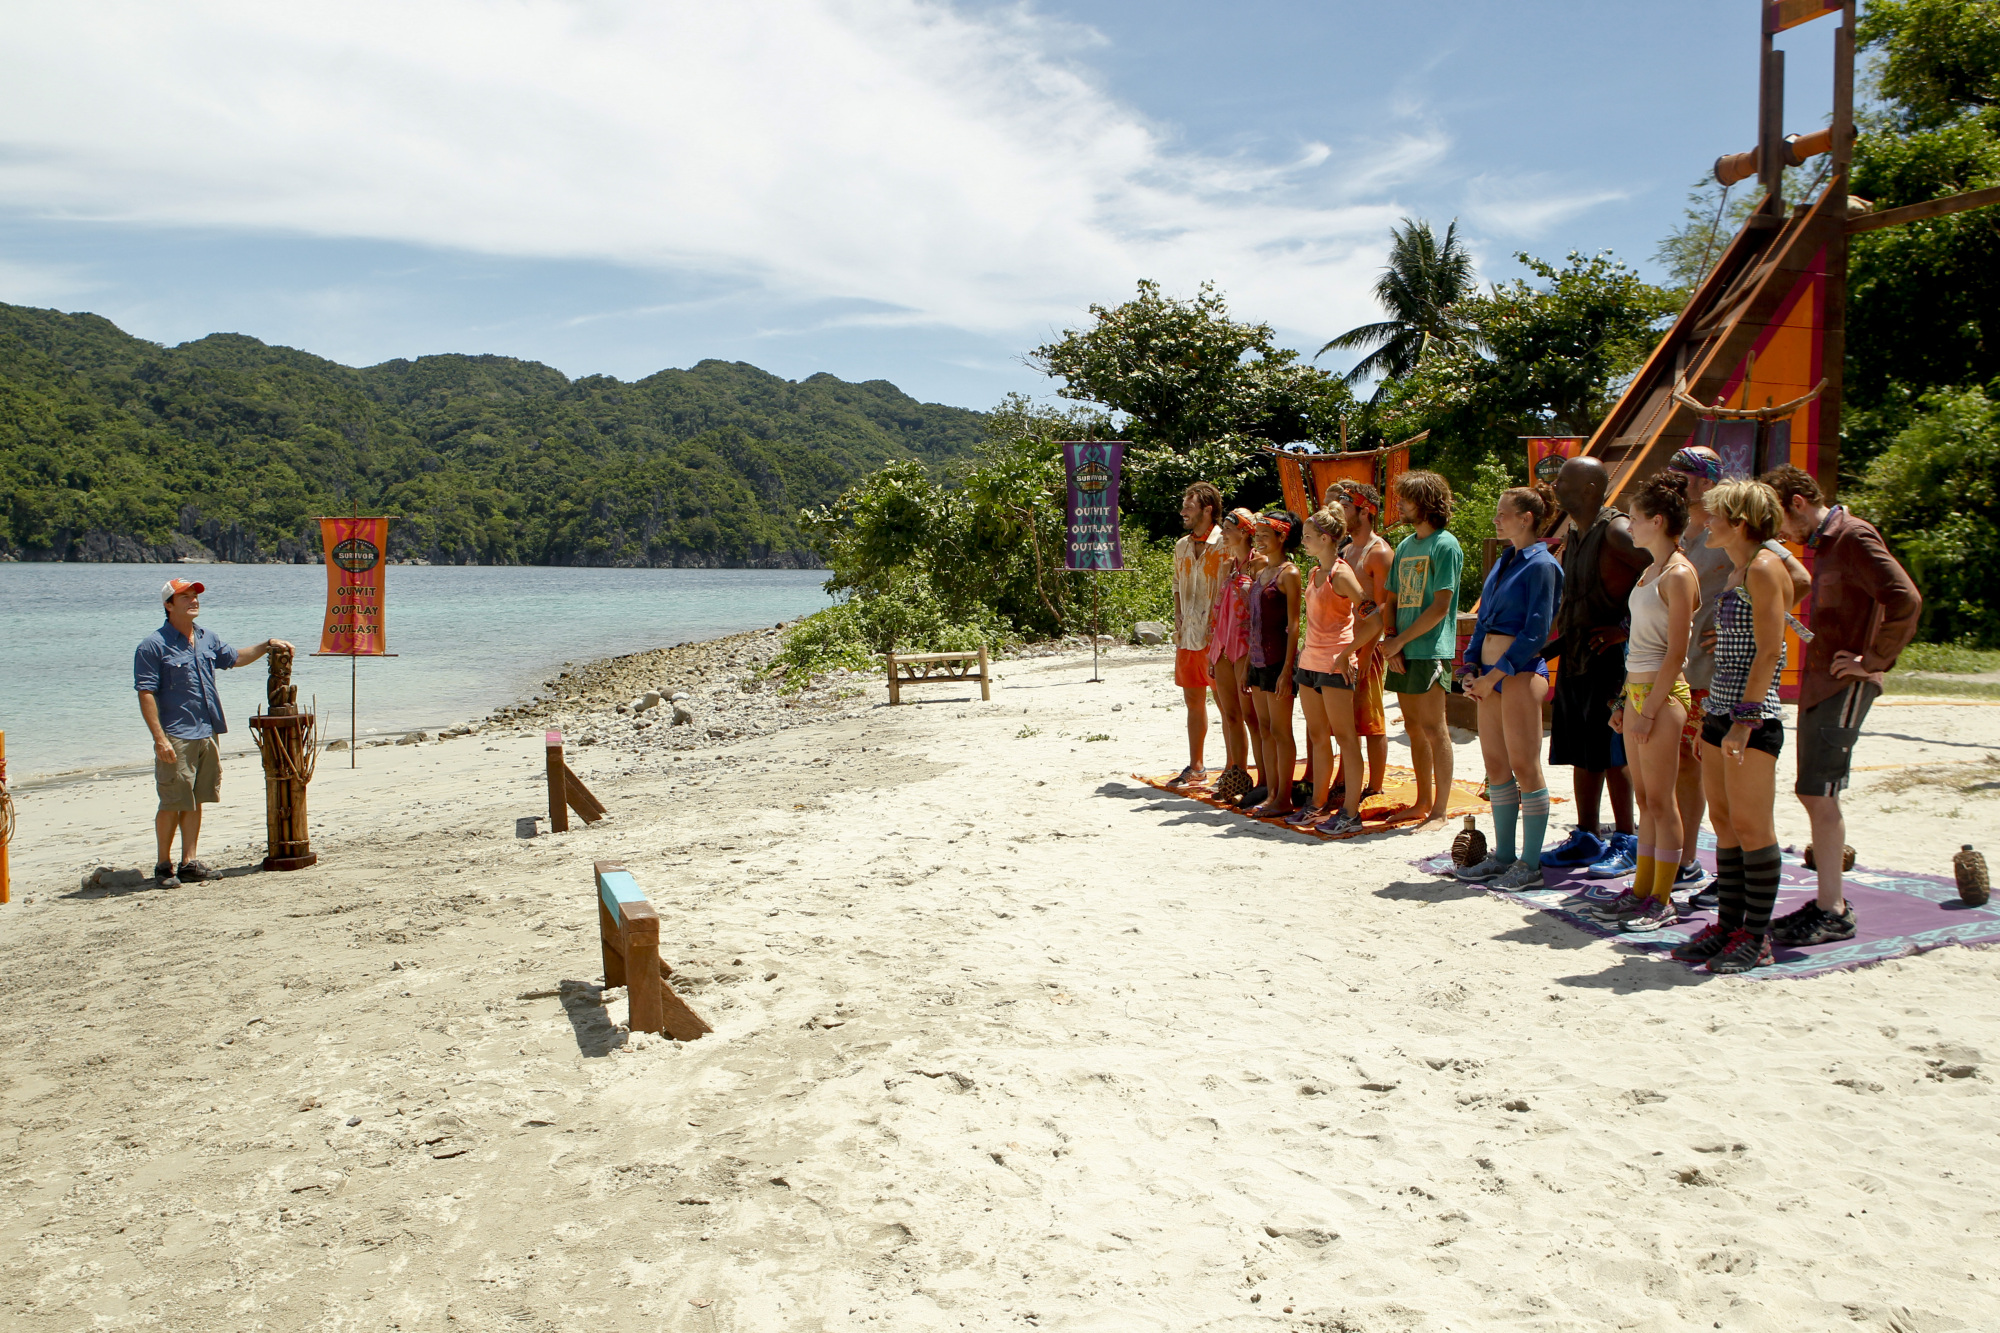 Getting ready for the immunity challenge in